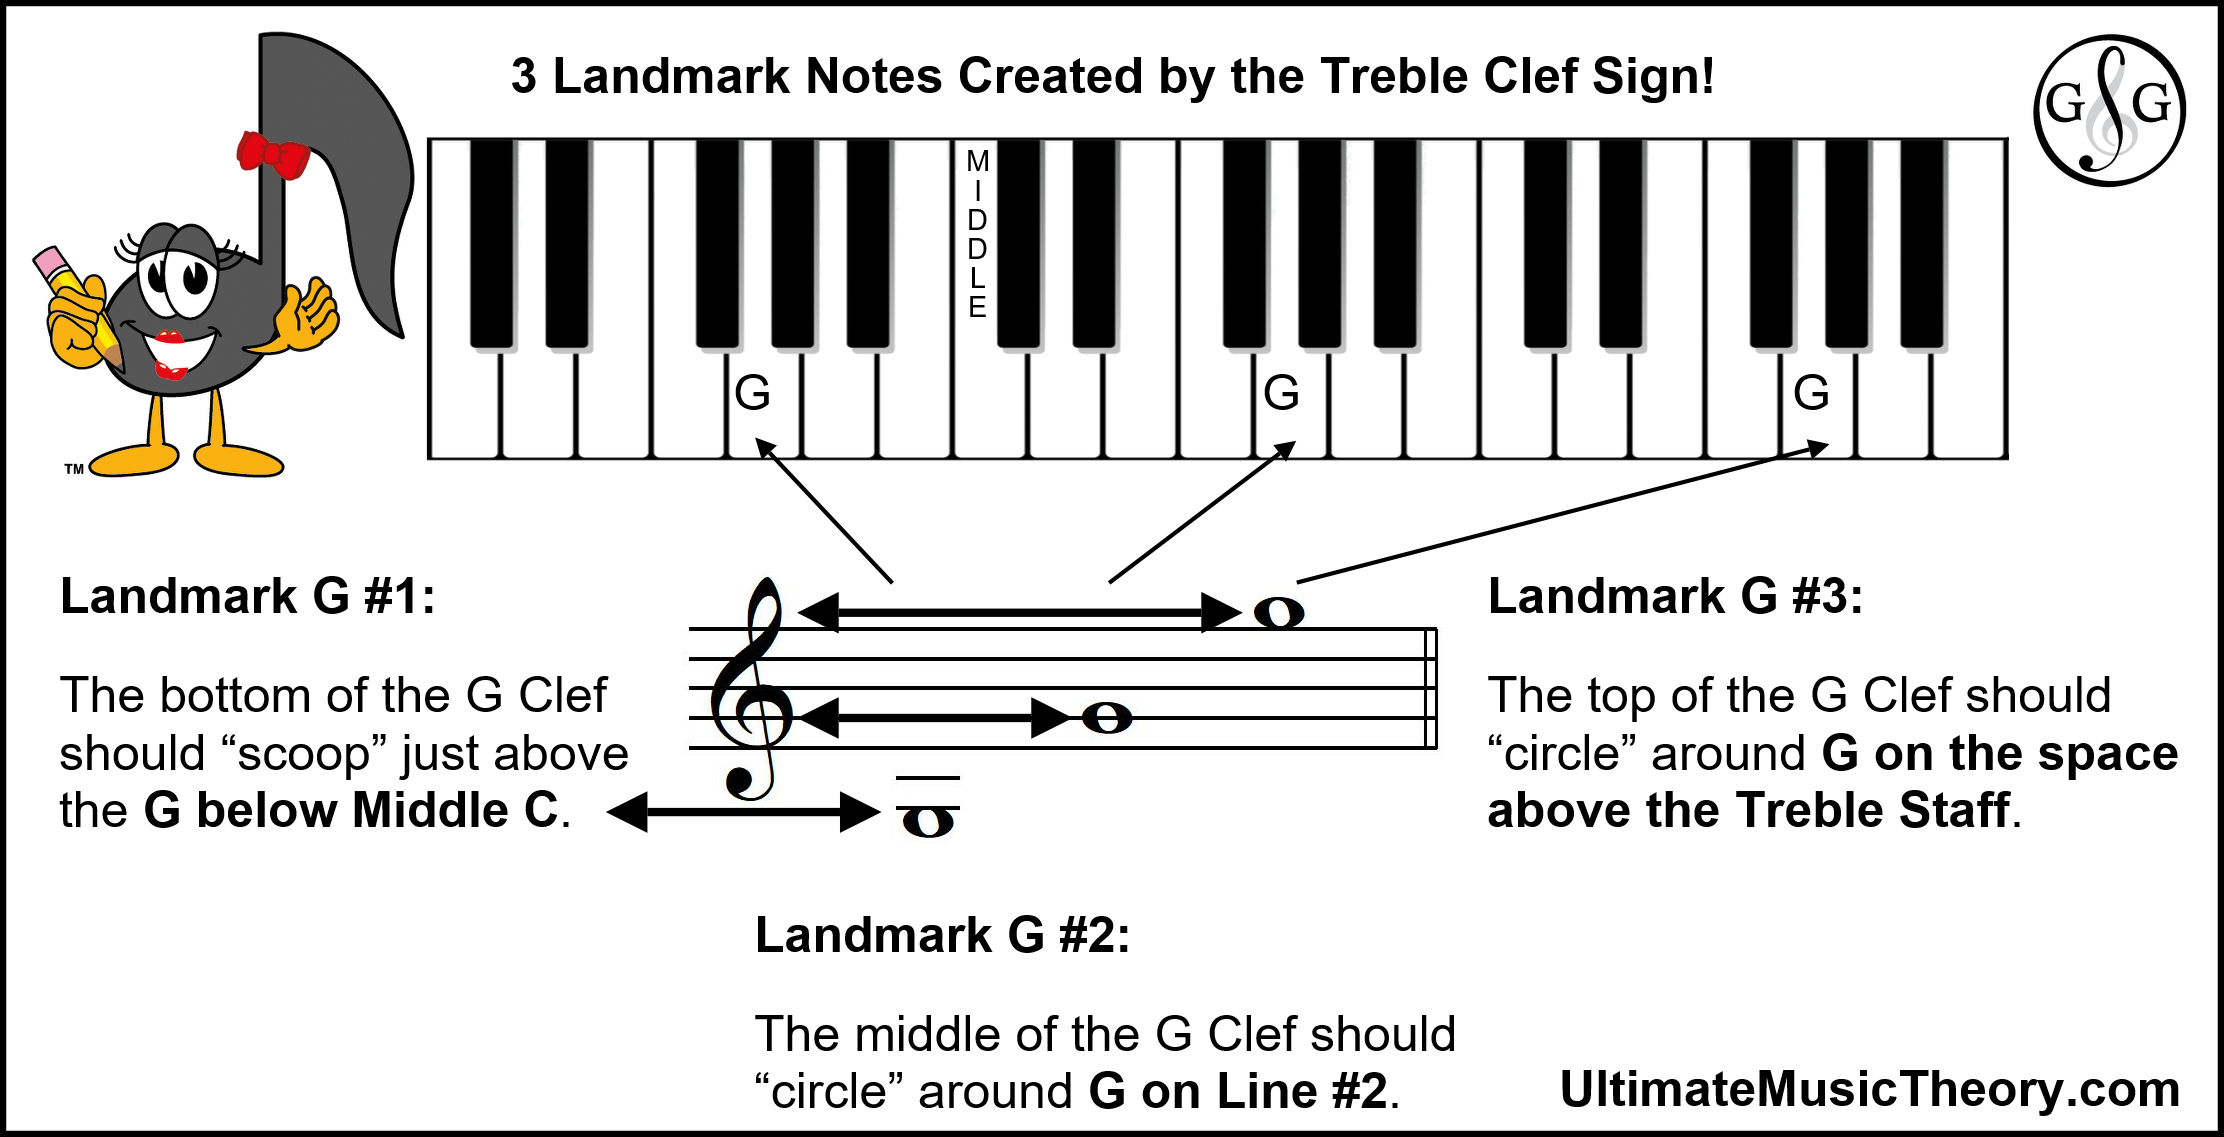 Clef Signs Create Landmark Notes - Ultimate Music Theory